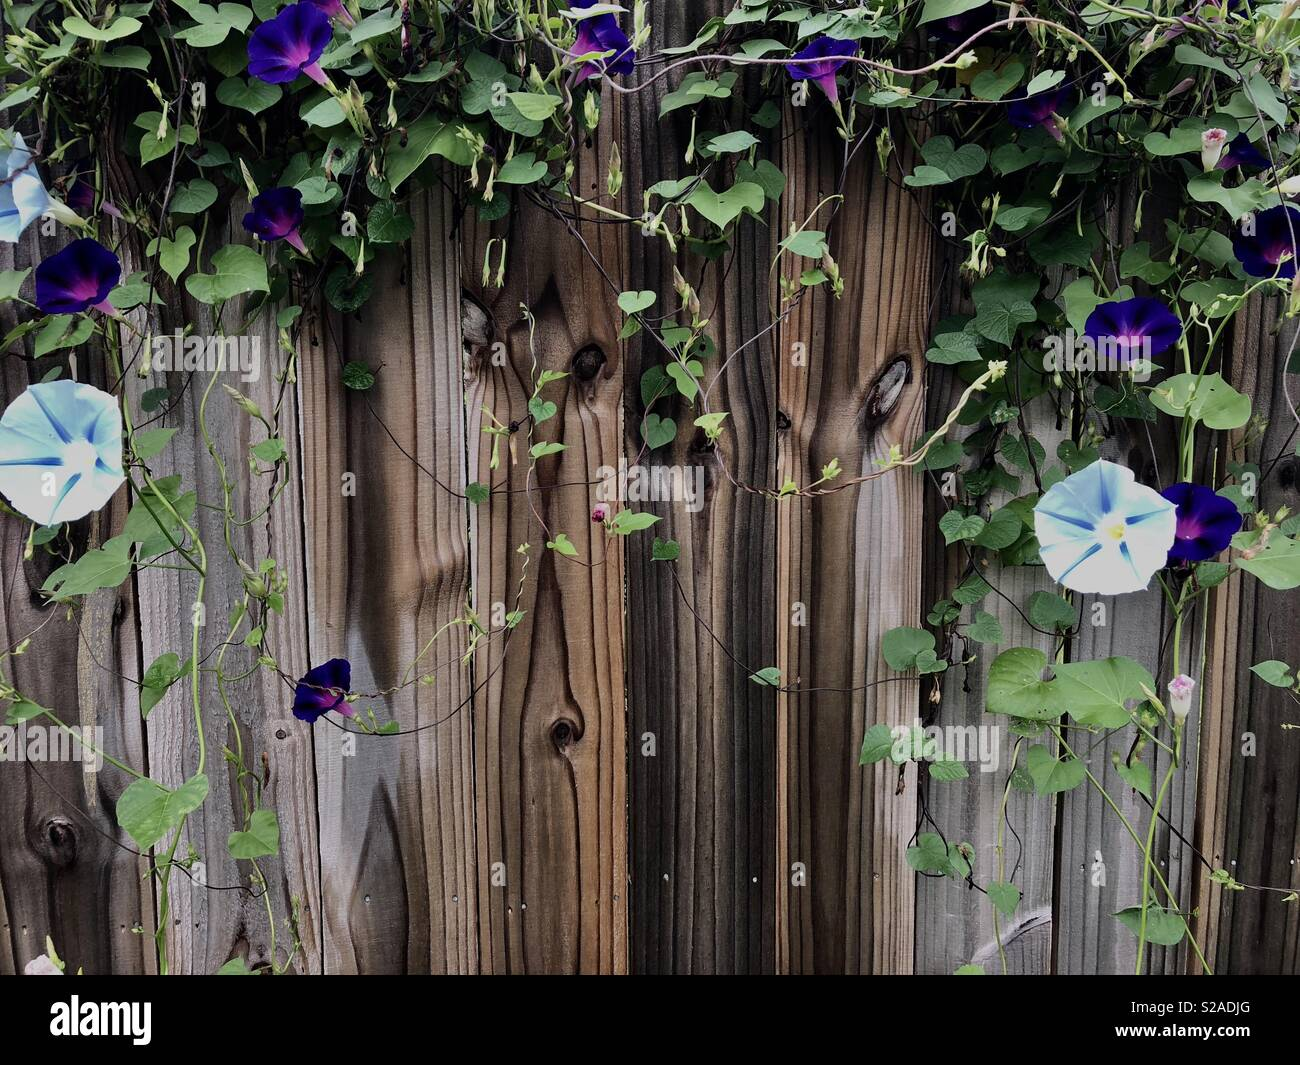 Morning glories spilling over a wooden fence - Stock Image